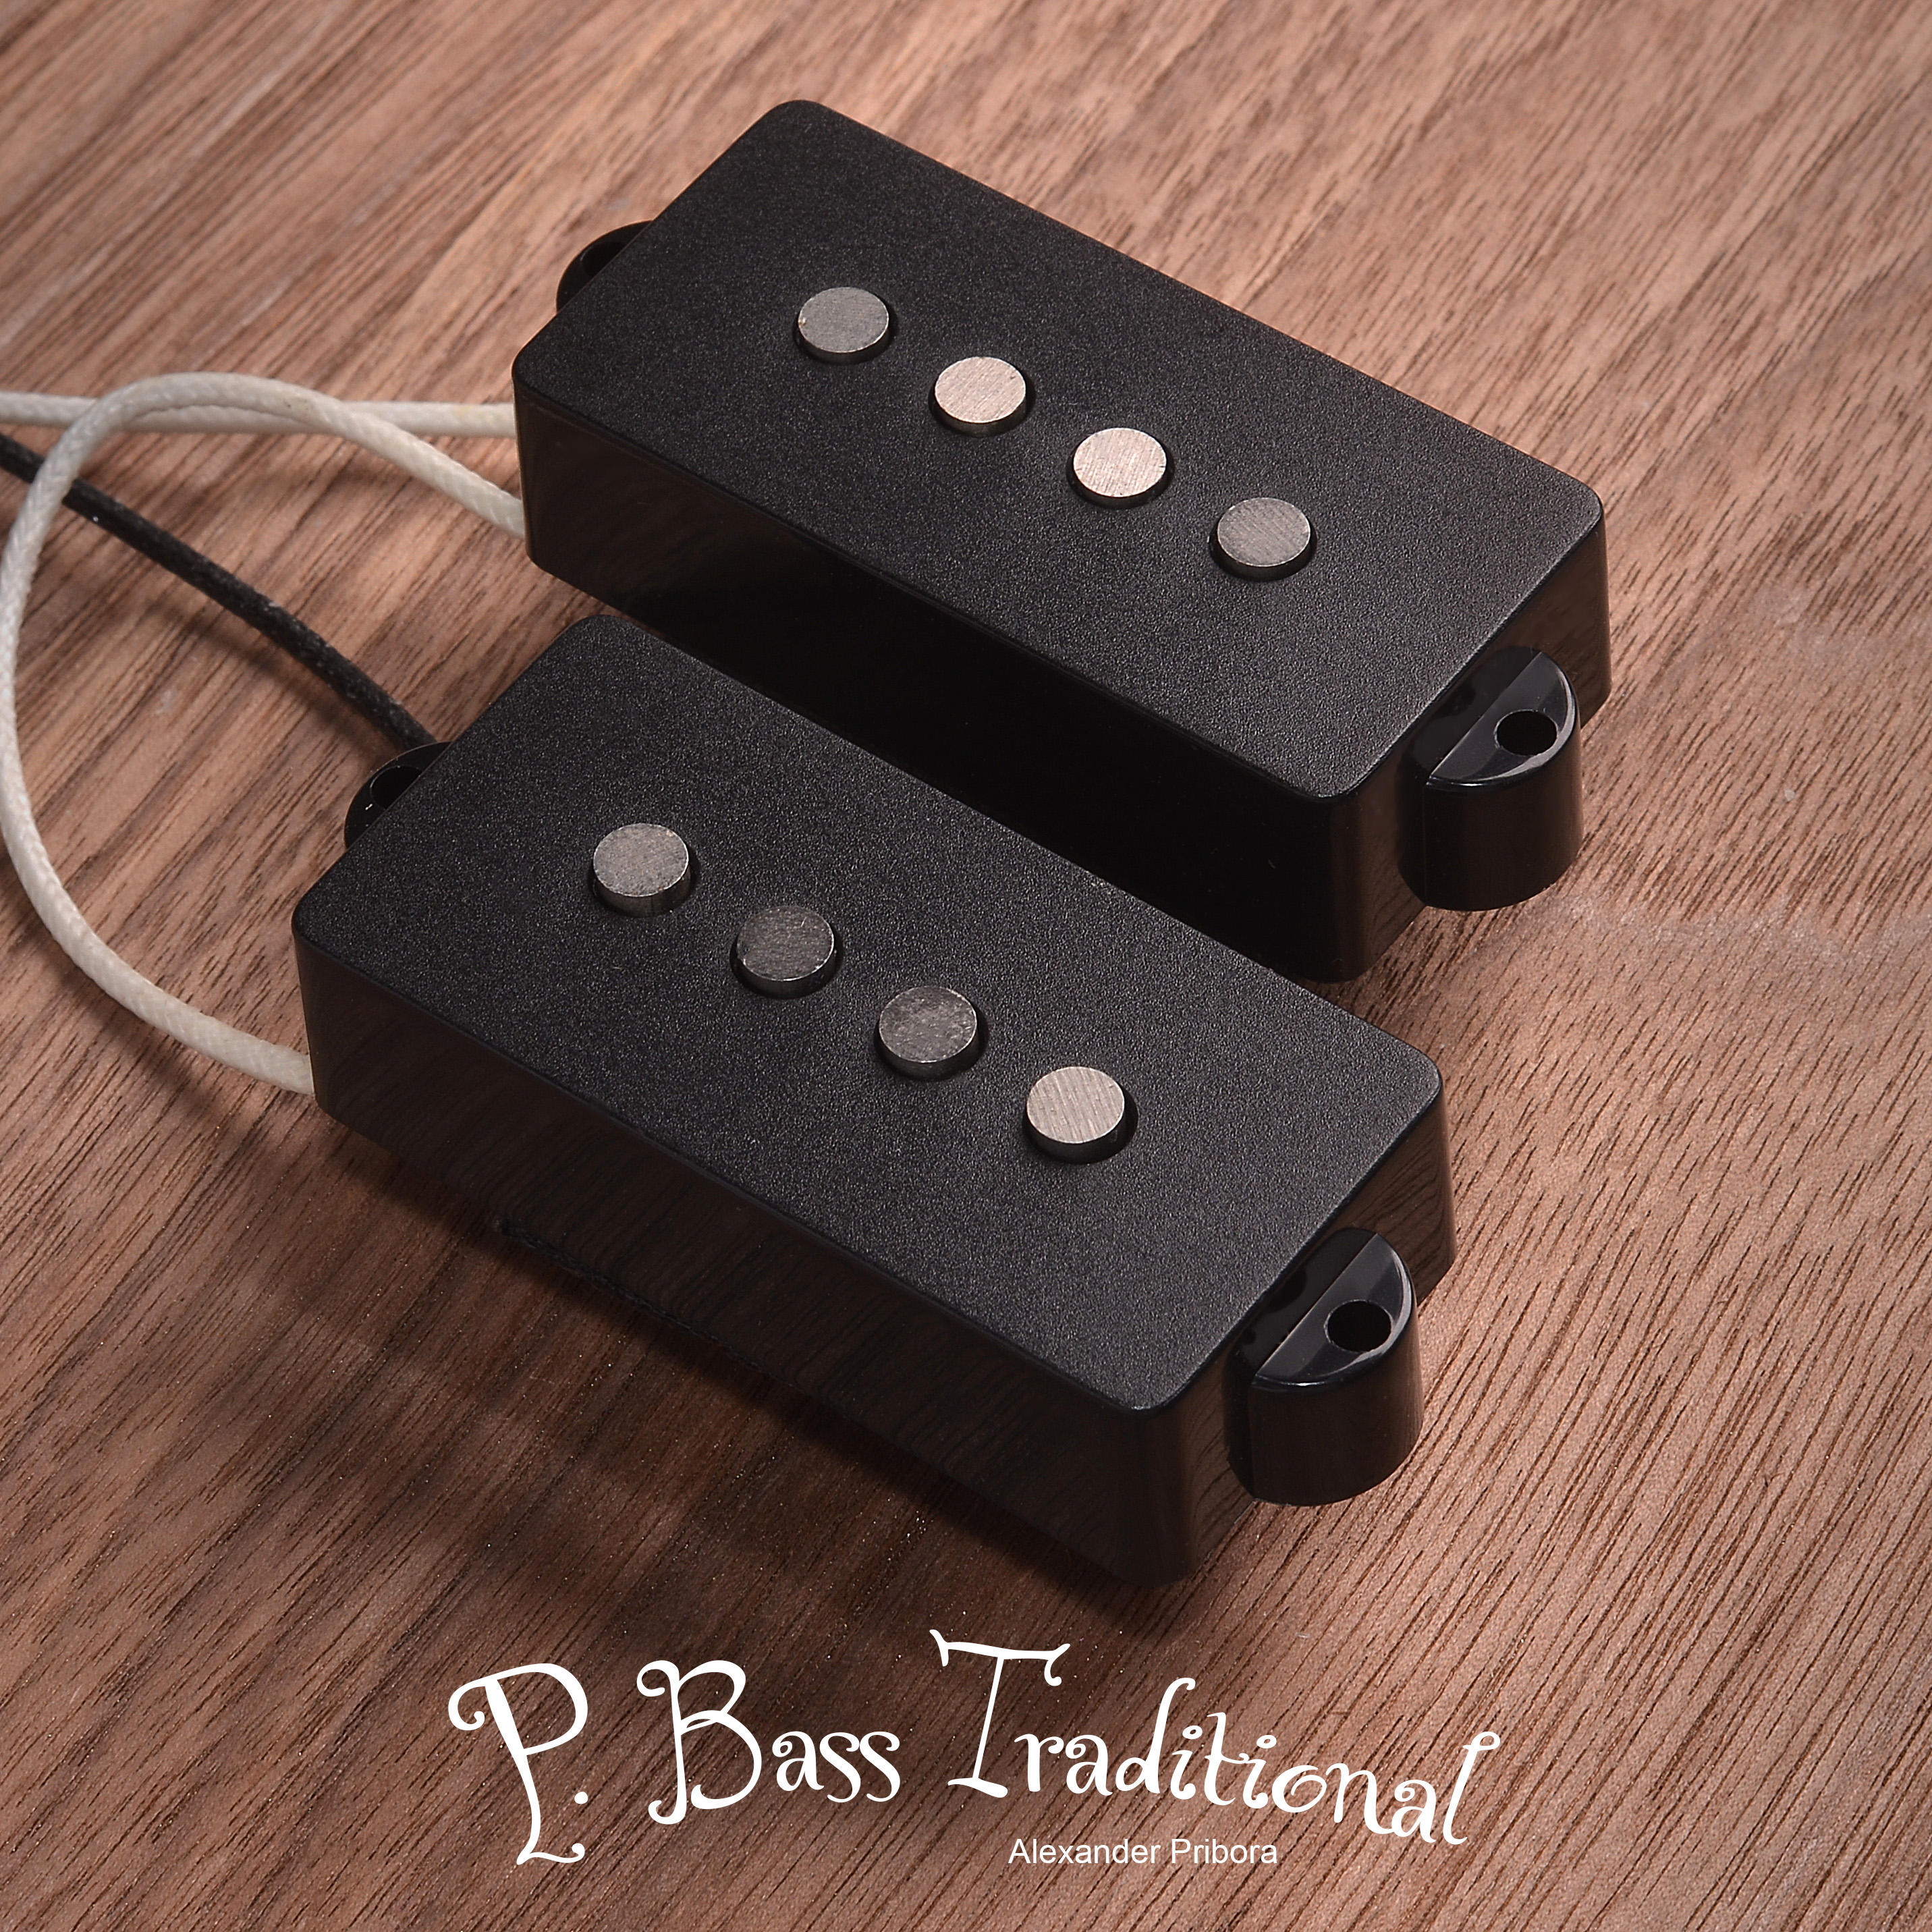 P Bass Traditional